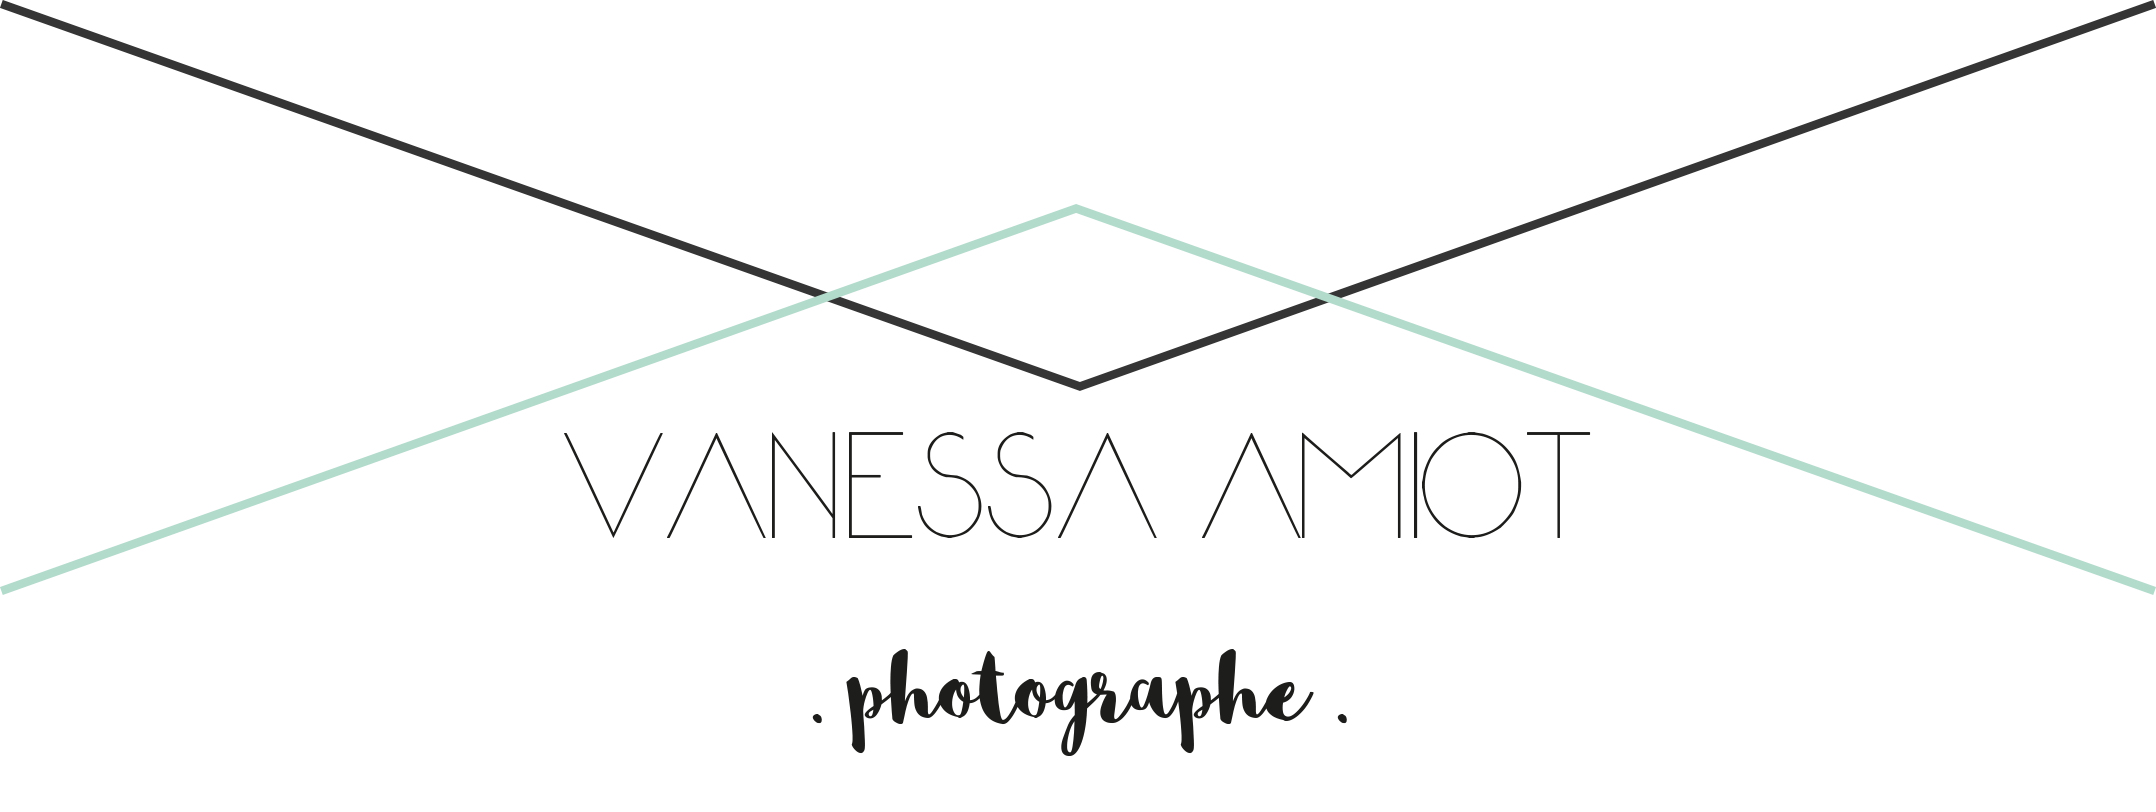 Vanessa Amiot Photographie